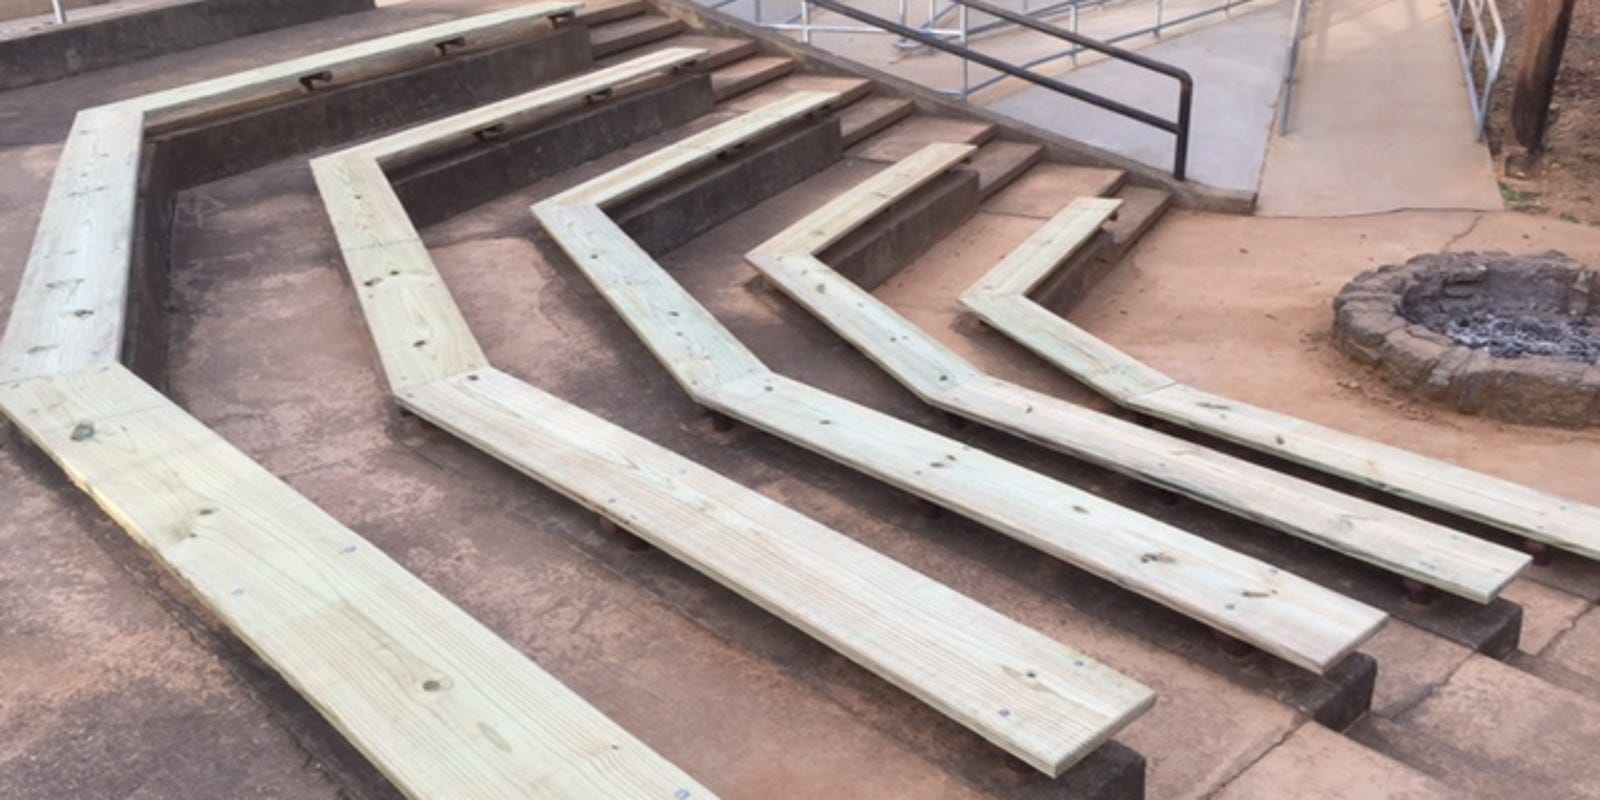 Boy Scout rebuilds seating at Rotary Park amphitheater